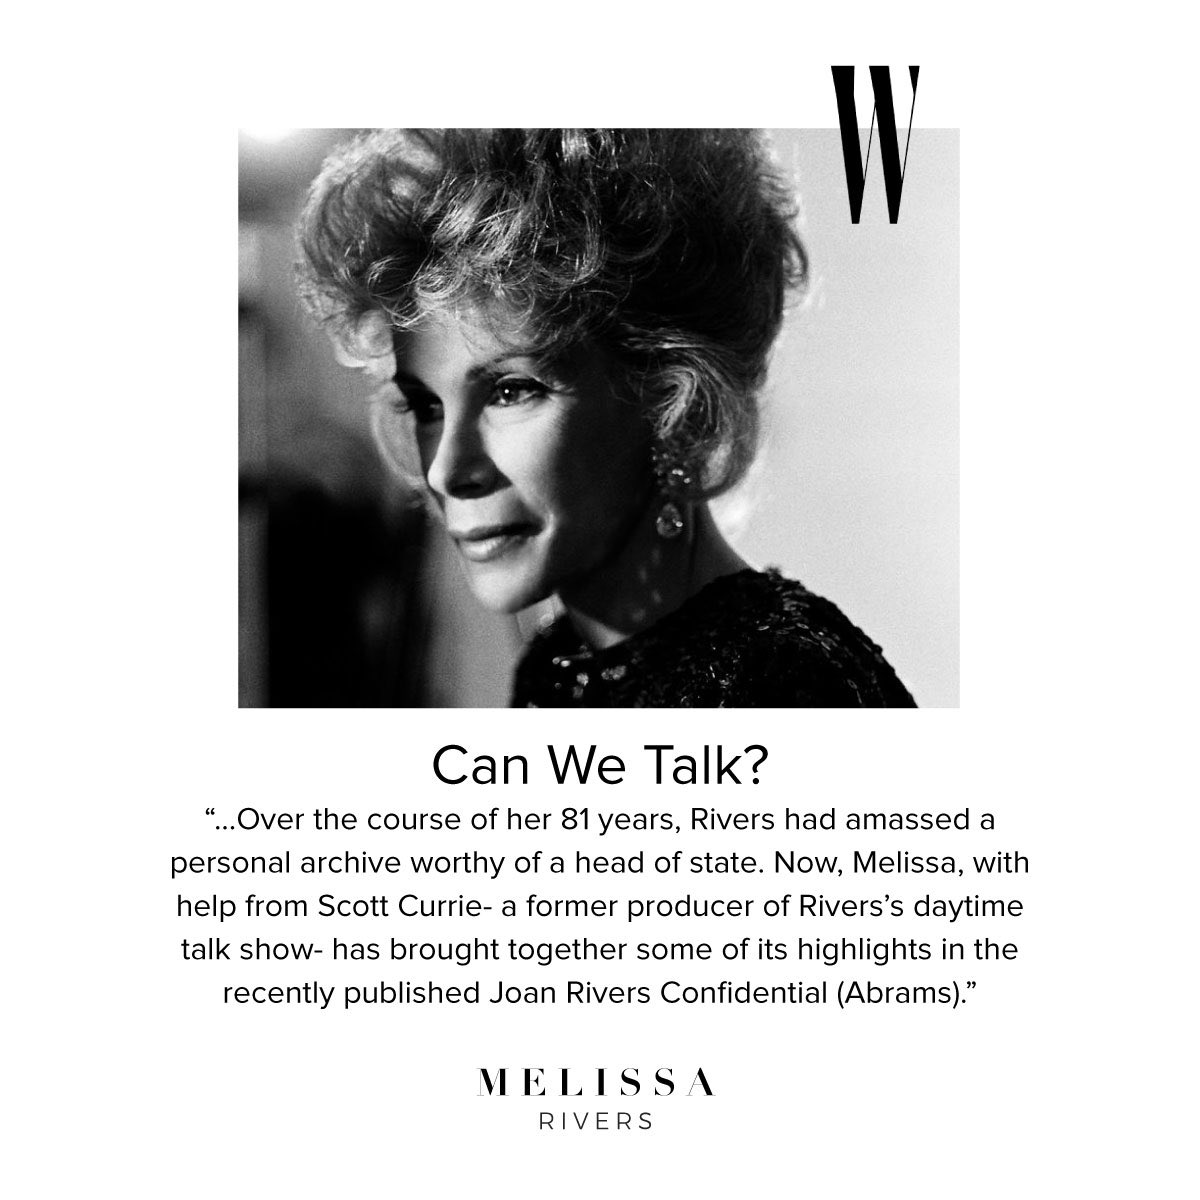 RT @MelRivers: Sneak peek of Joan Rivers Confidential in @wmag! Preorders available now and in stores October 24. https://t.co/k6pSJBd6mR